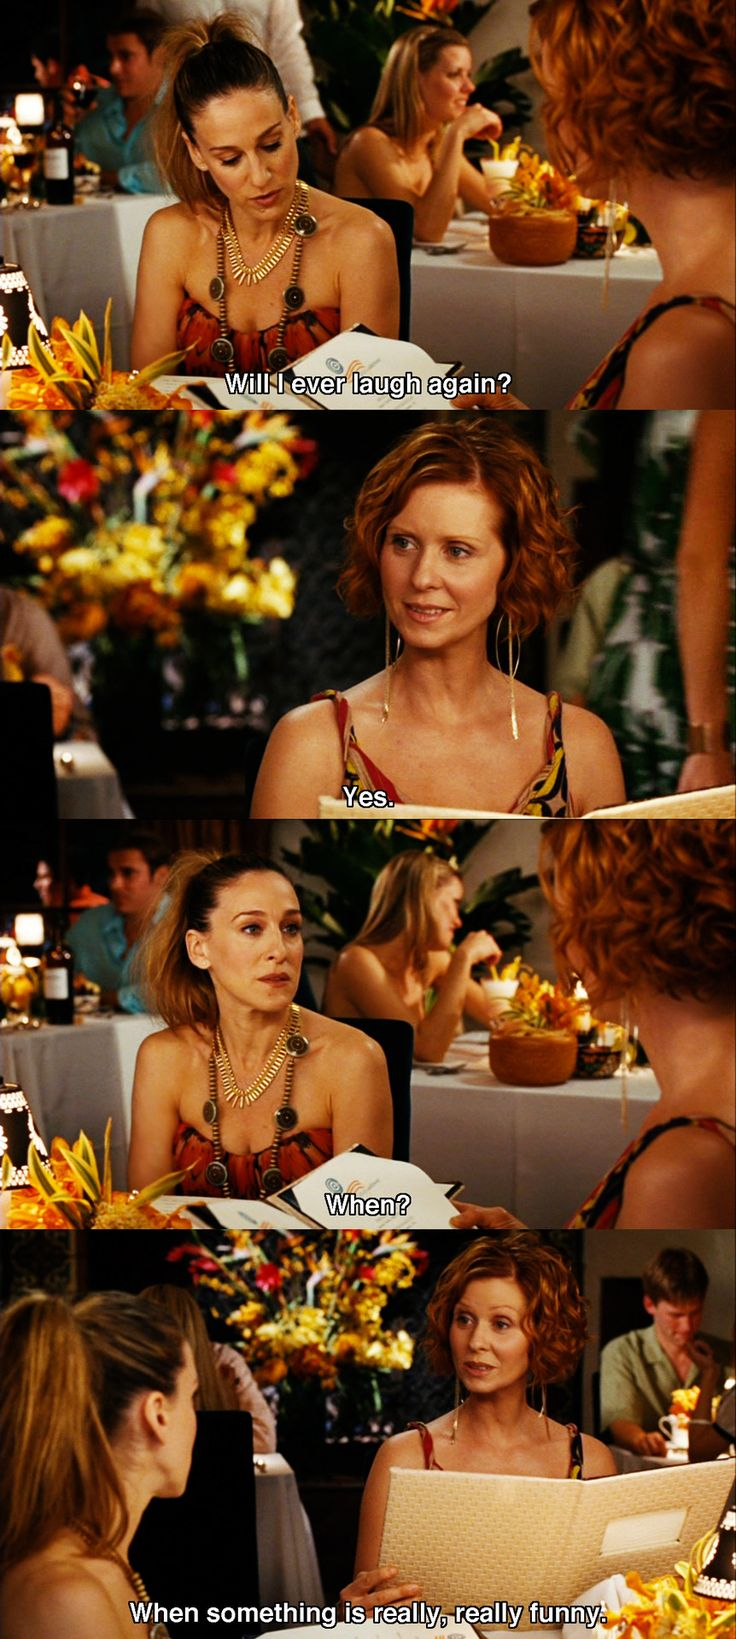 Will I ever laugh again? Yes. When? When something is really funny. Sex and the City